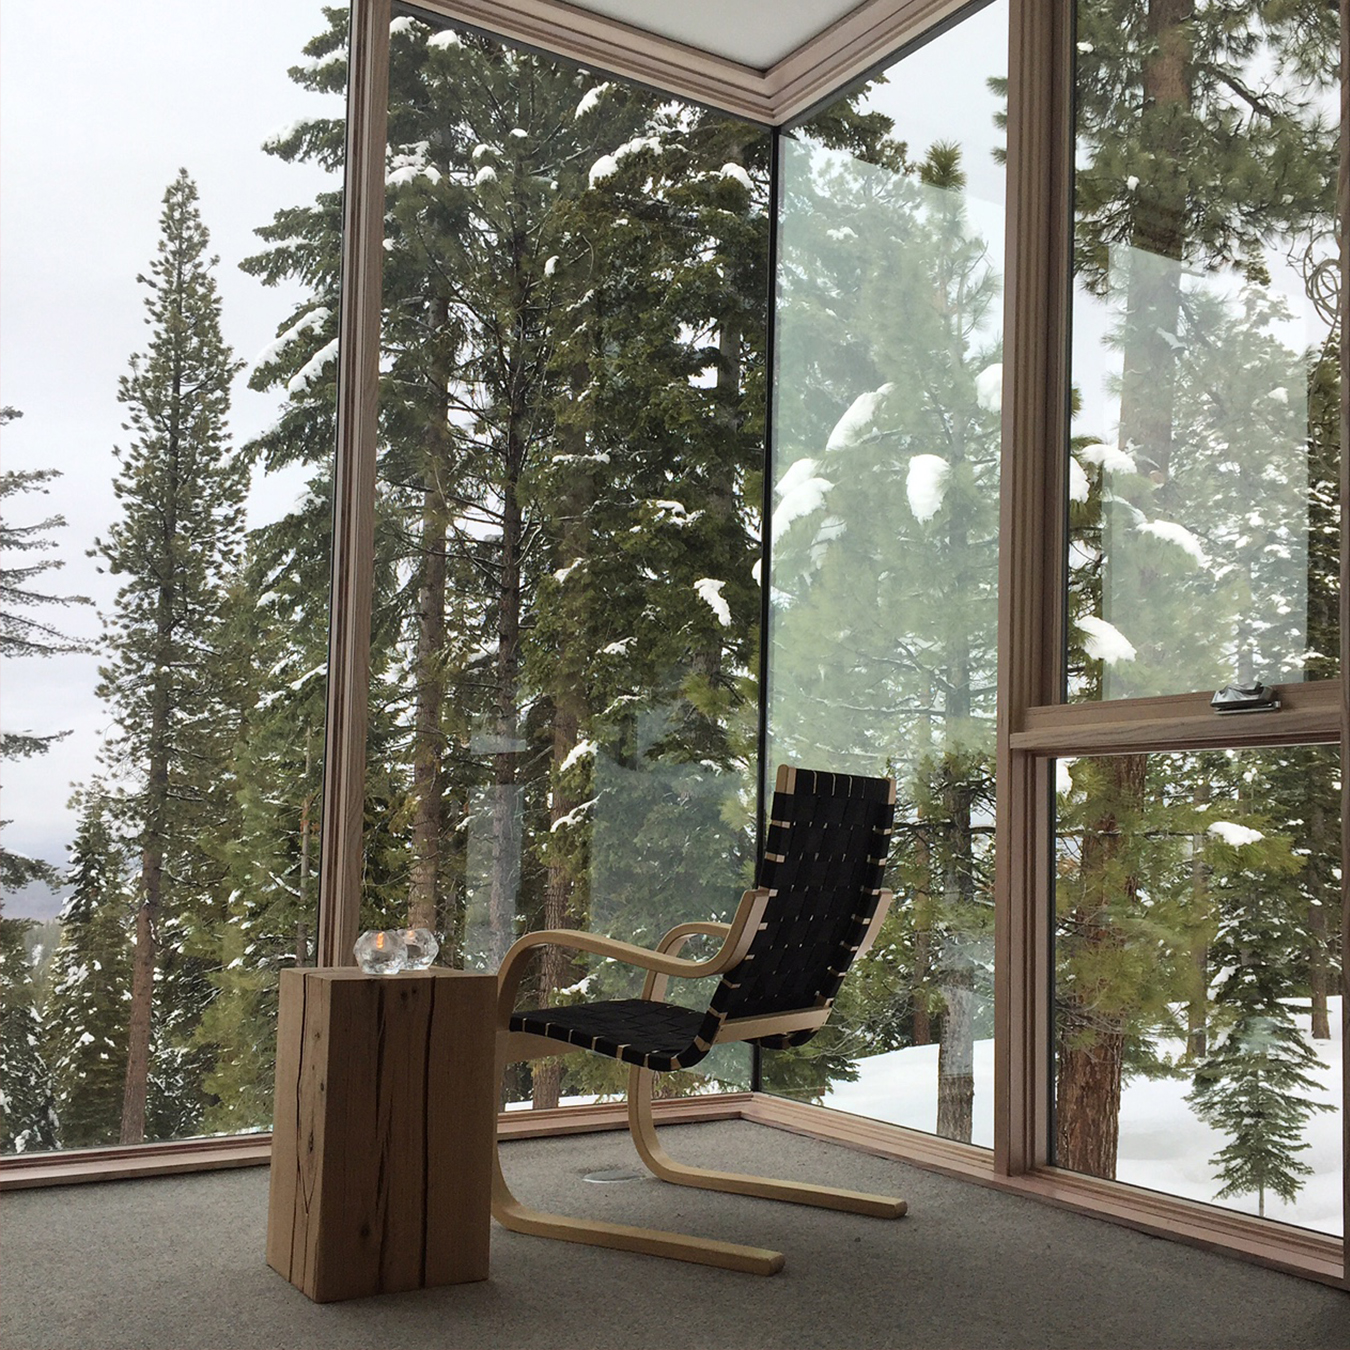 Northstar Stellar Residences Interior with View of Trees and Snow